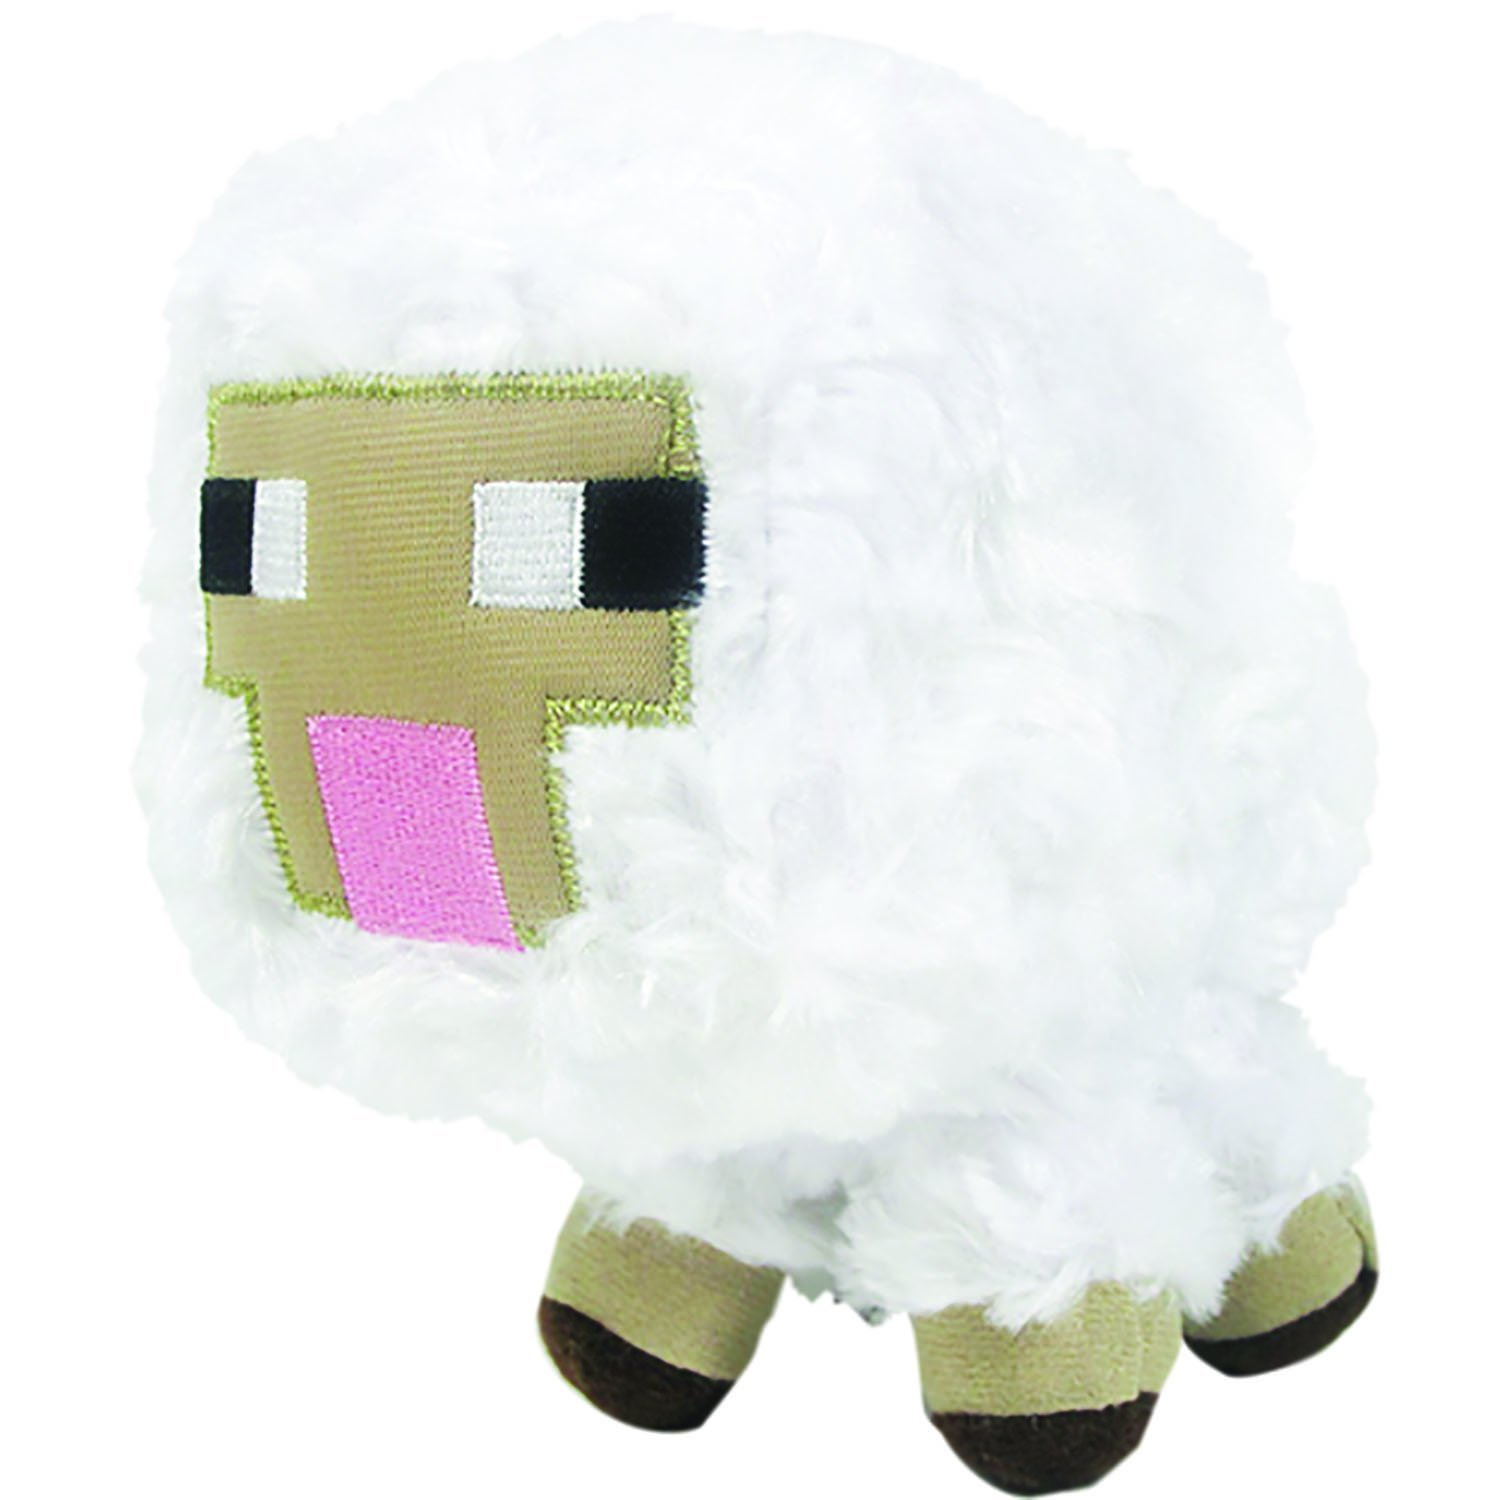 Minecraft 7-inch Plush Sheep Character Options 16527